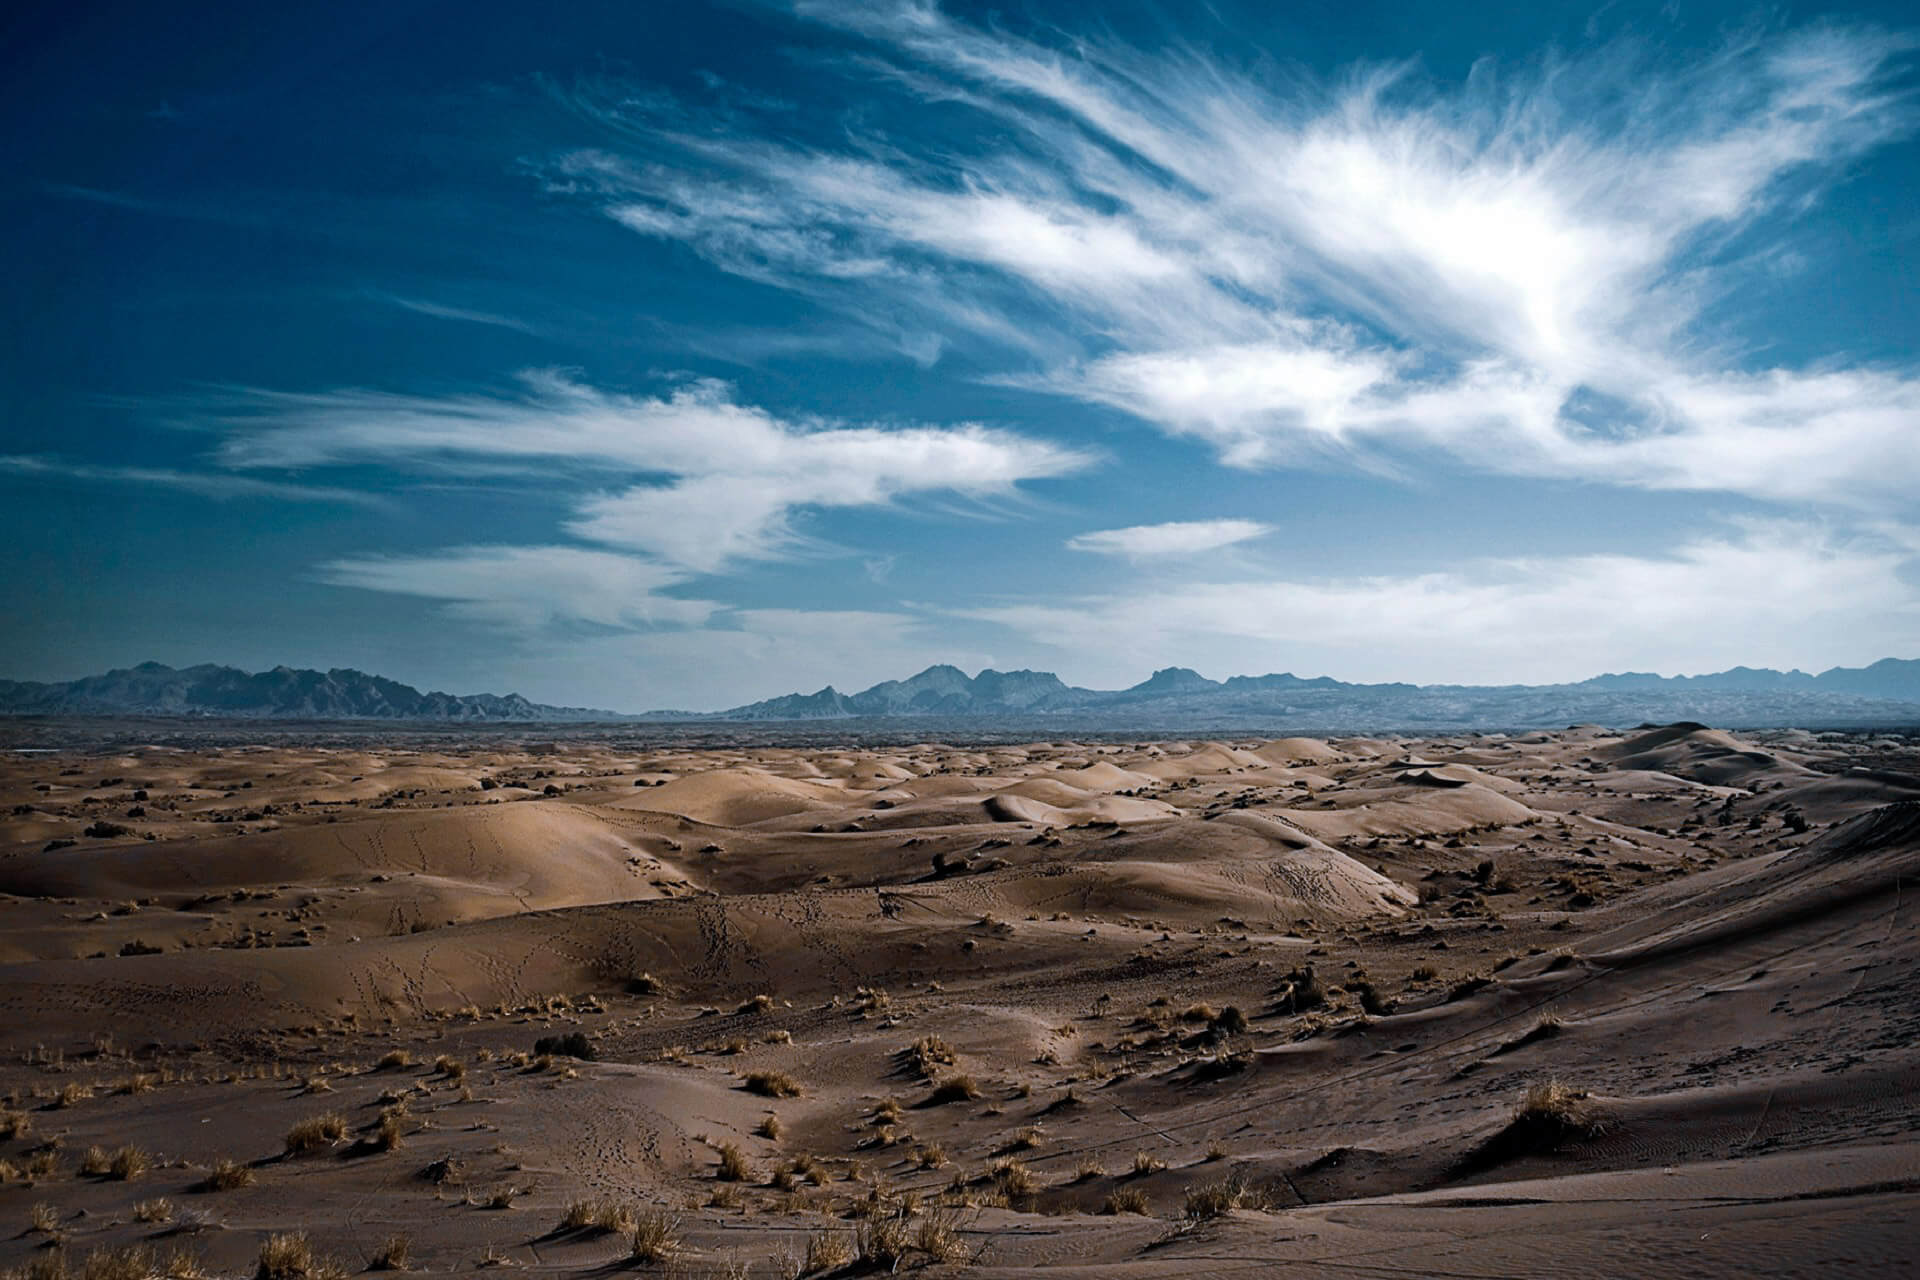 Dasht-e Cavir - The Magic Of The Most Beautiful Deserts In The World